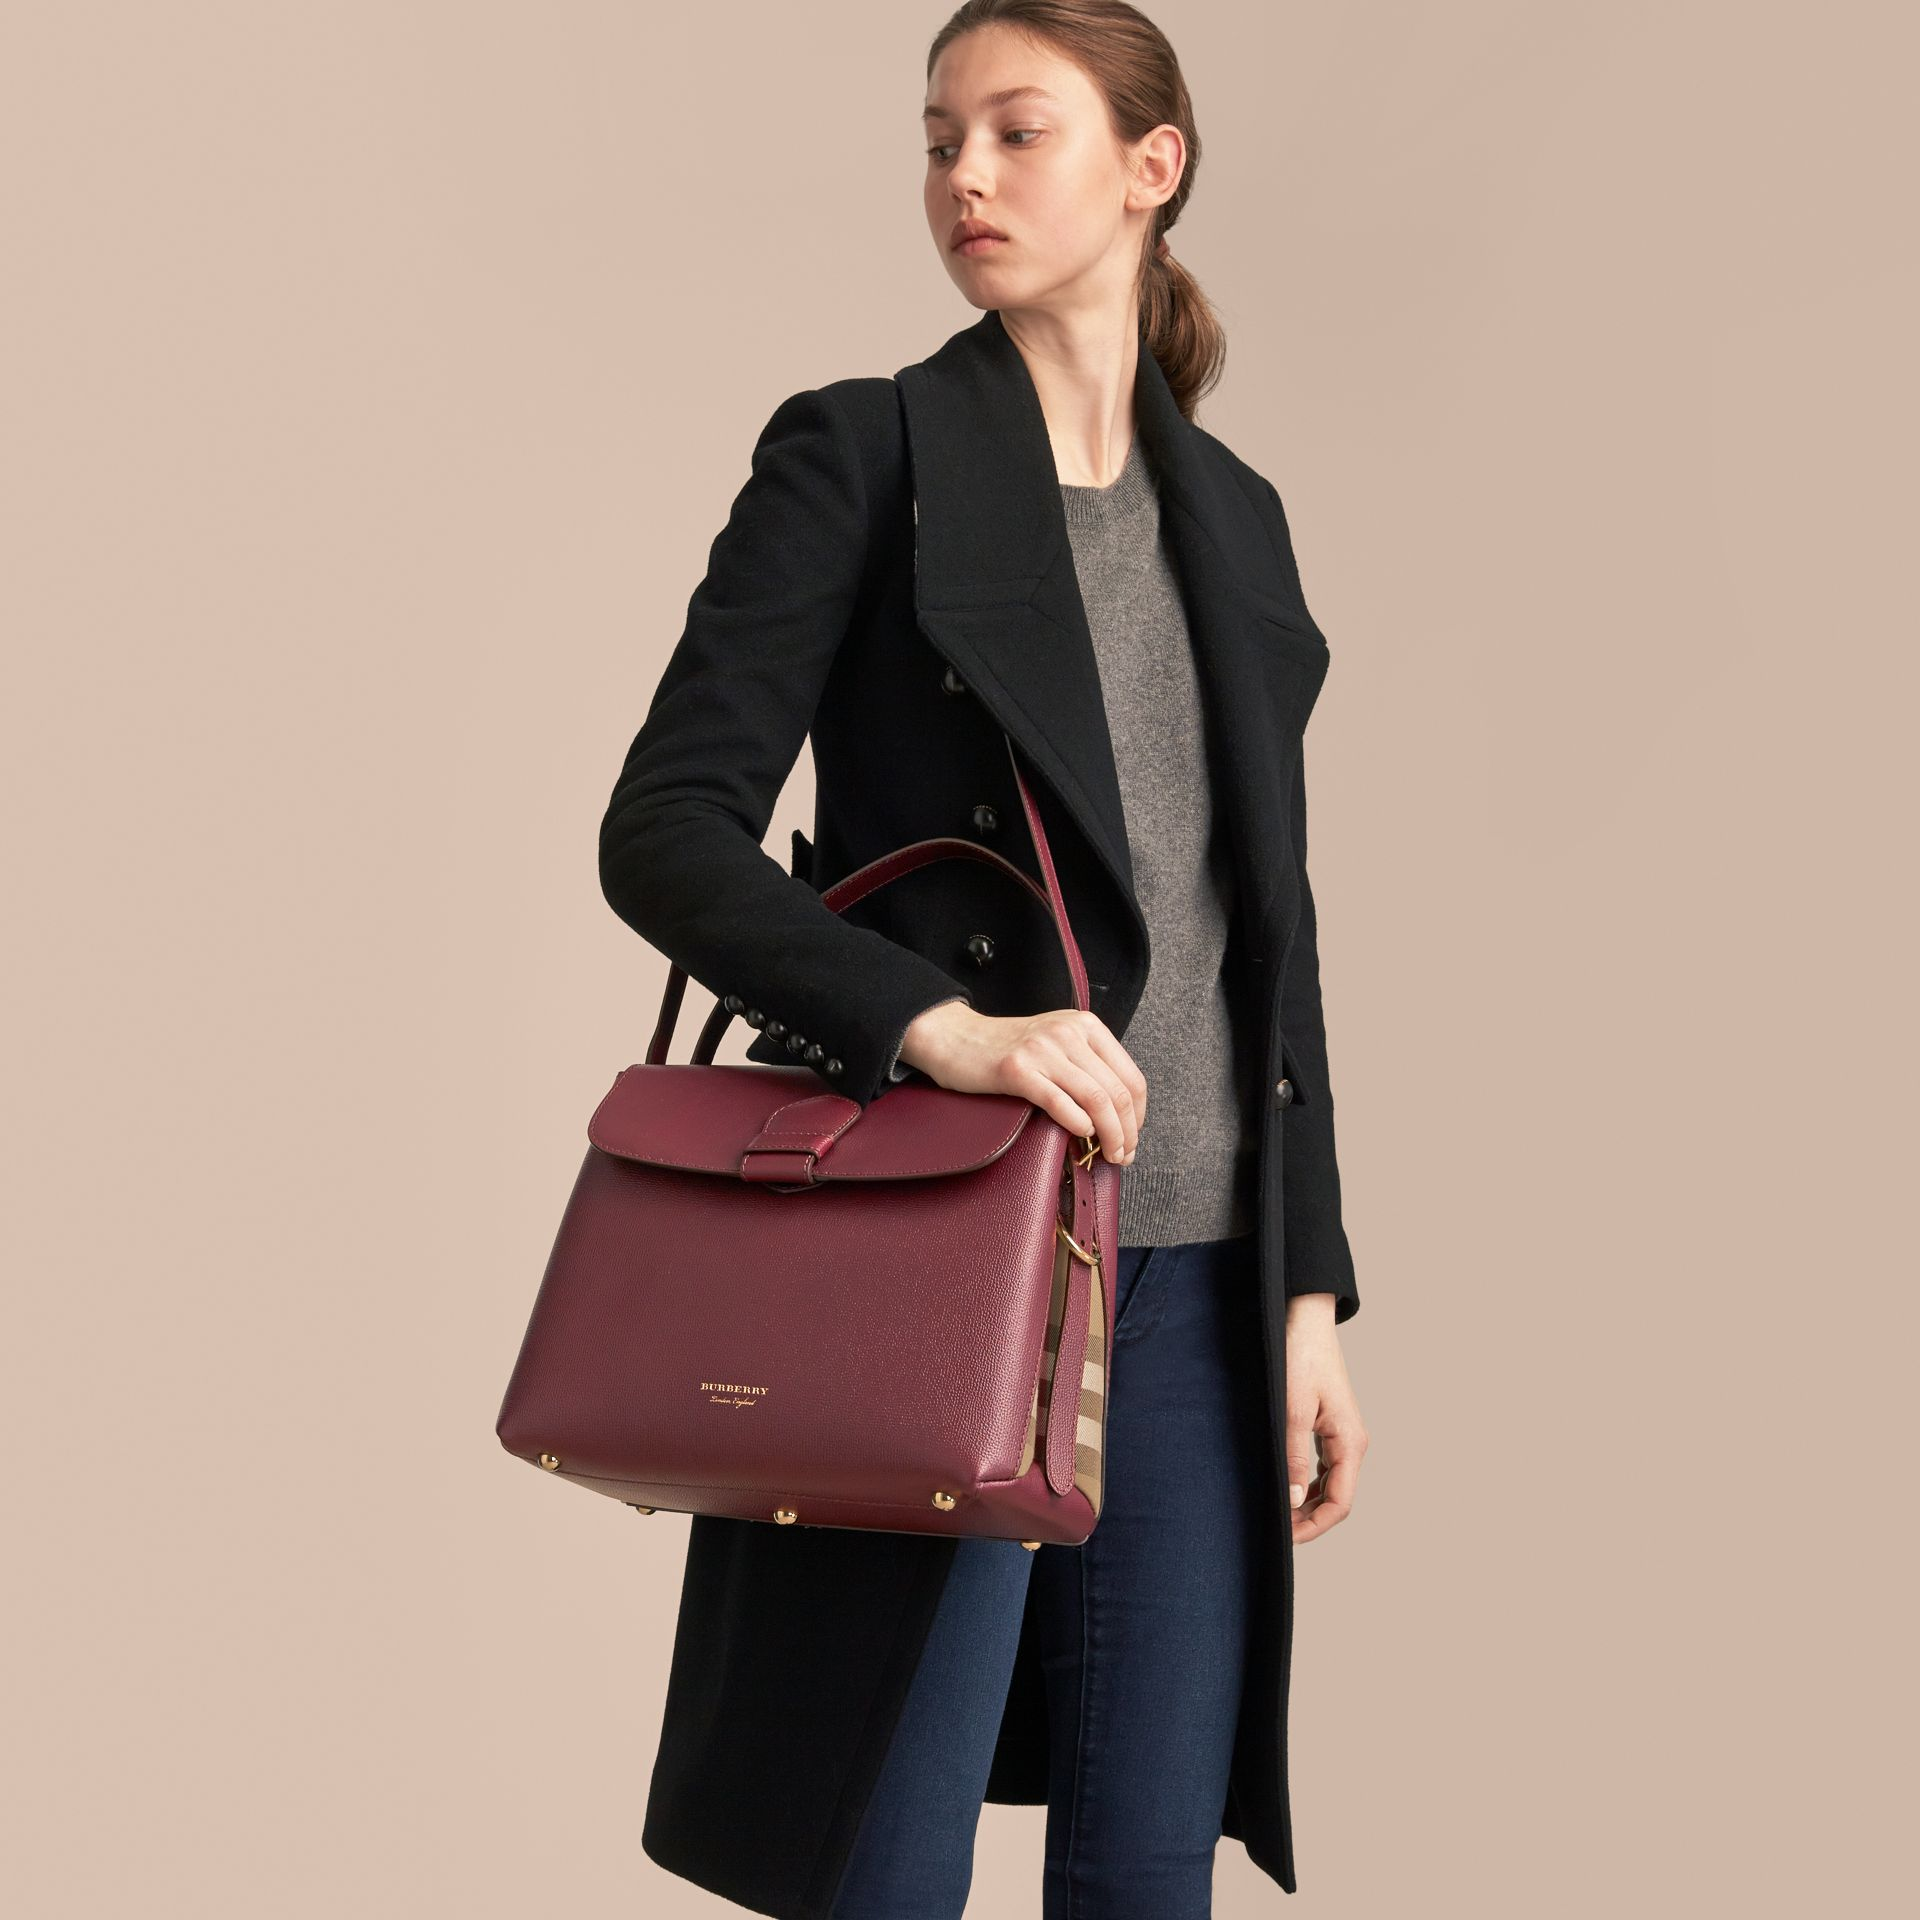 Medium Grainy Leather and House Check Tote Bag in Mahogany Red - Women | Burberry Singapore - gallery image 3